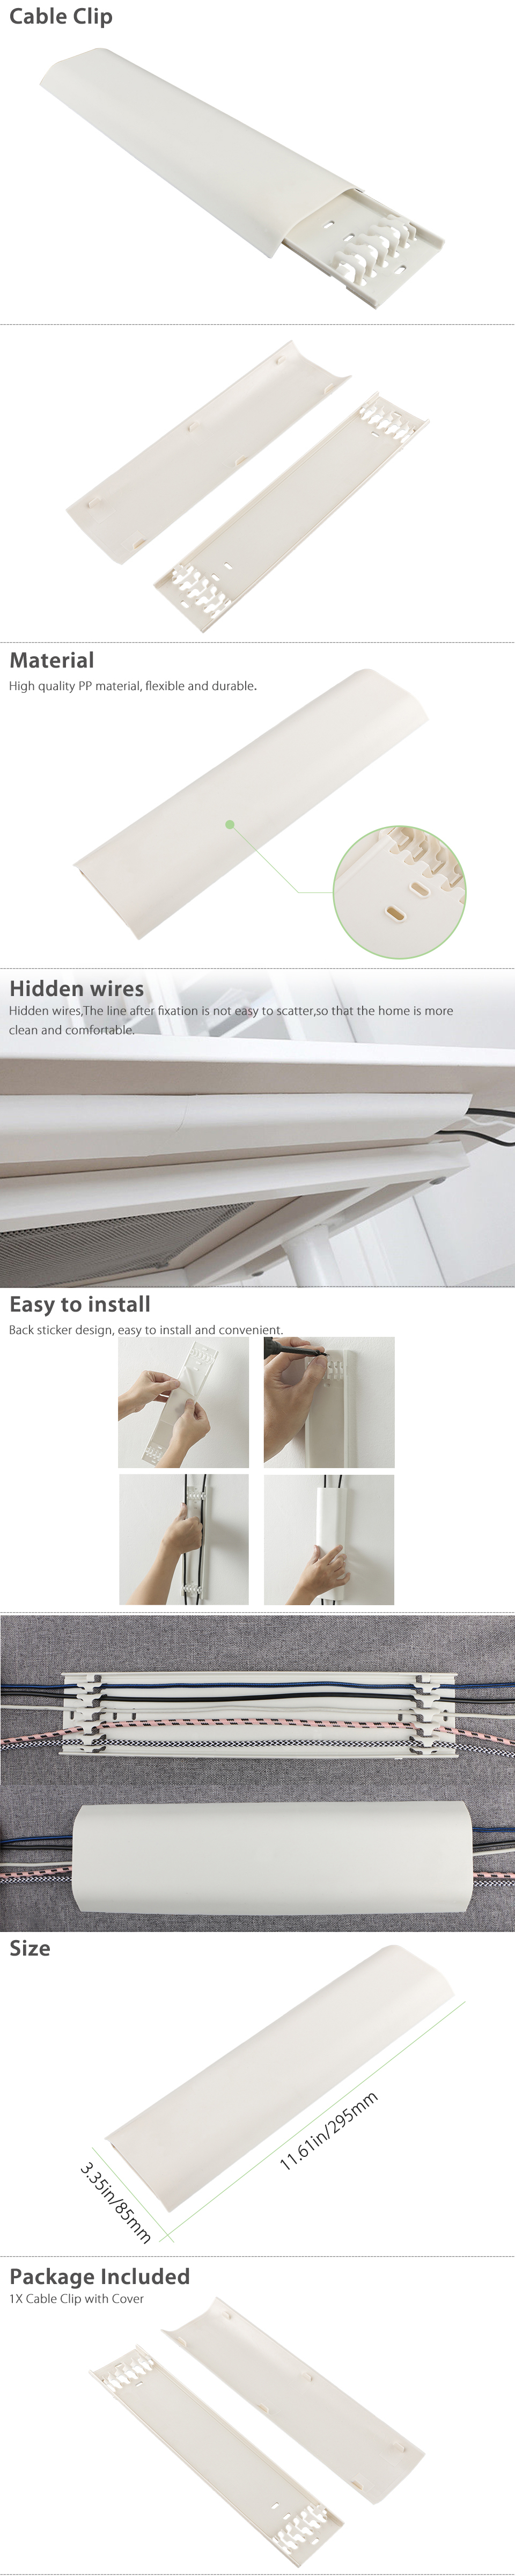 Floor Wire Molding Details About Safe Cable Clip Wire Tidy Cover Hide Management Organizer Fixed Holder Winder